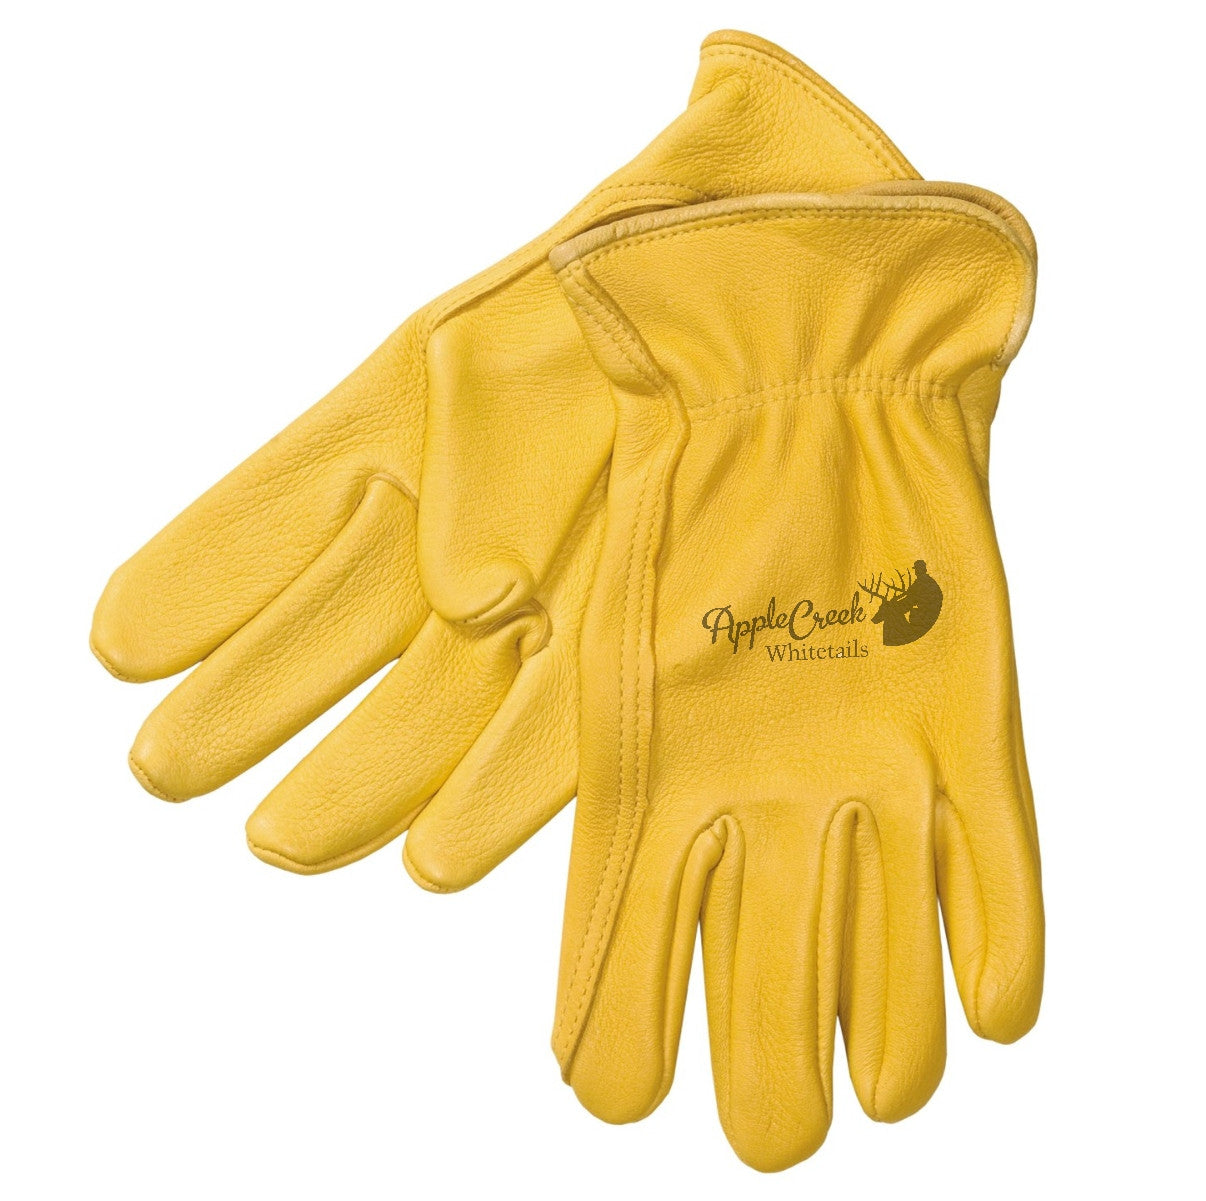 Insulated leather work gloves amazon - Yellow Leather Work Gloves Deer Skin Leather Work Gloves